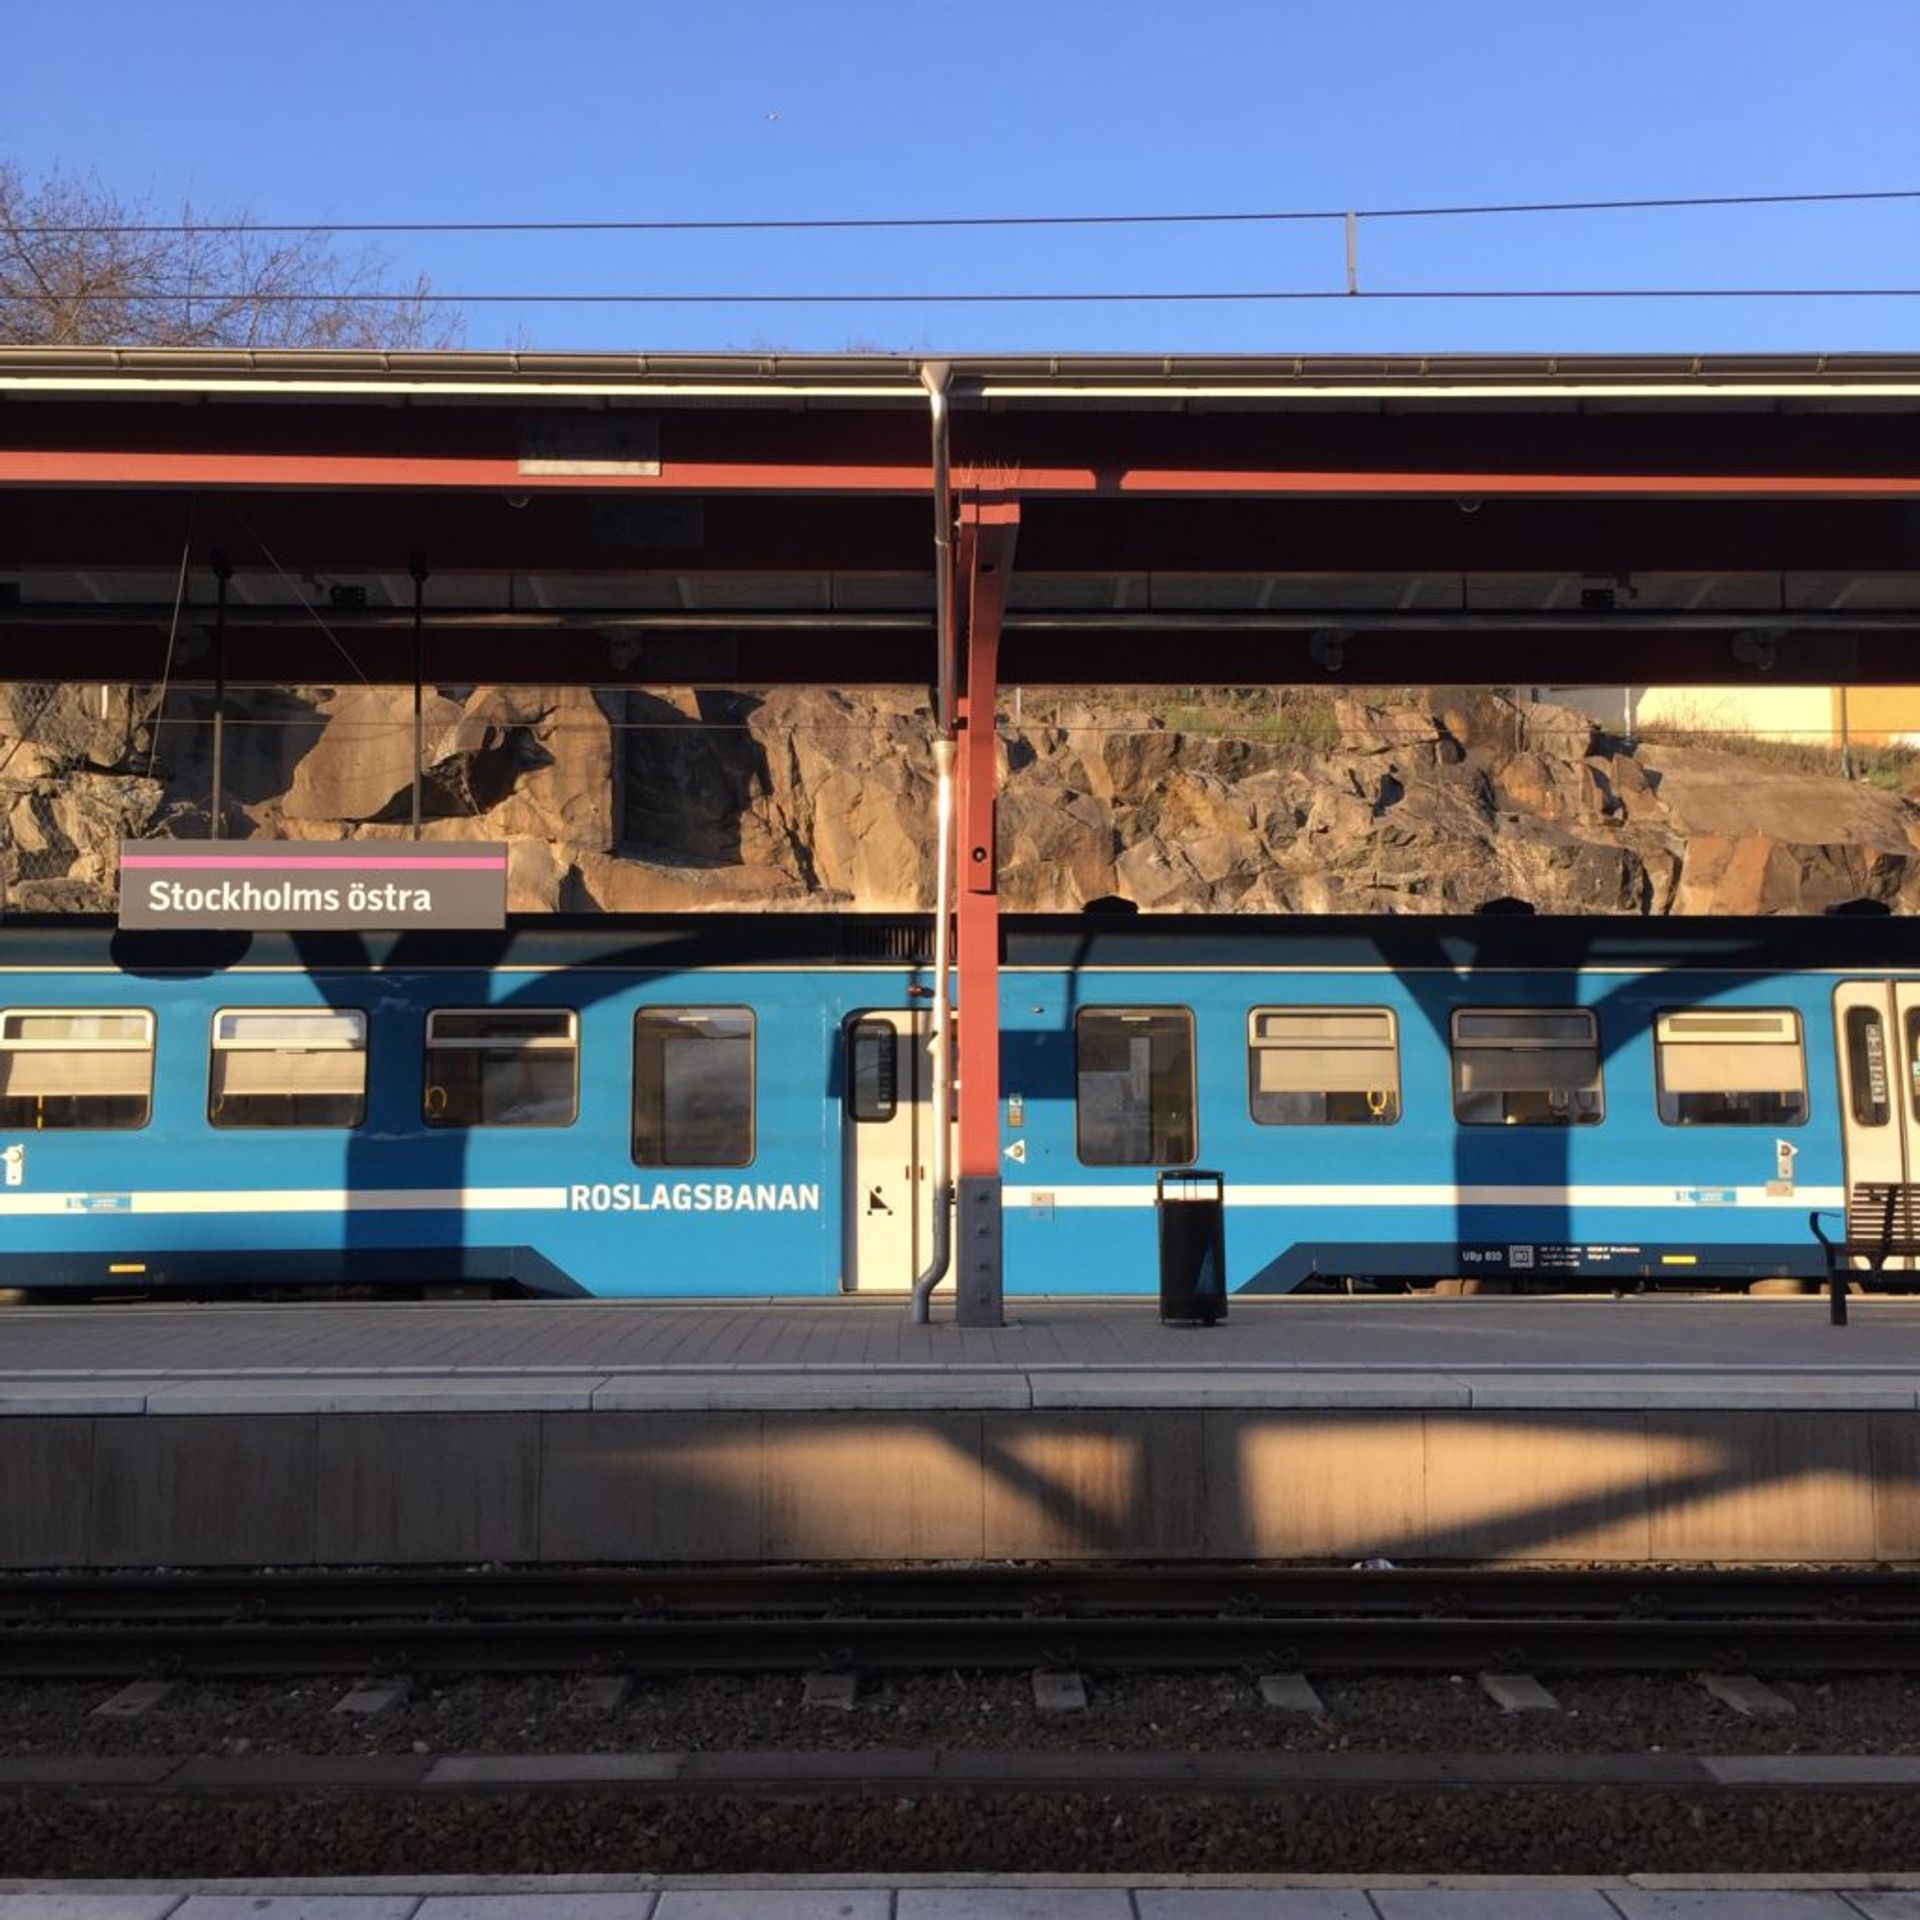 A blue commuter train standing still at a train station in Stockholm.